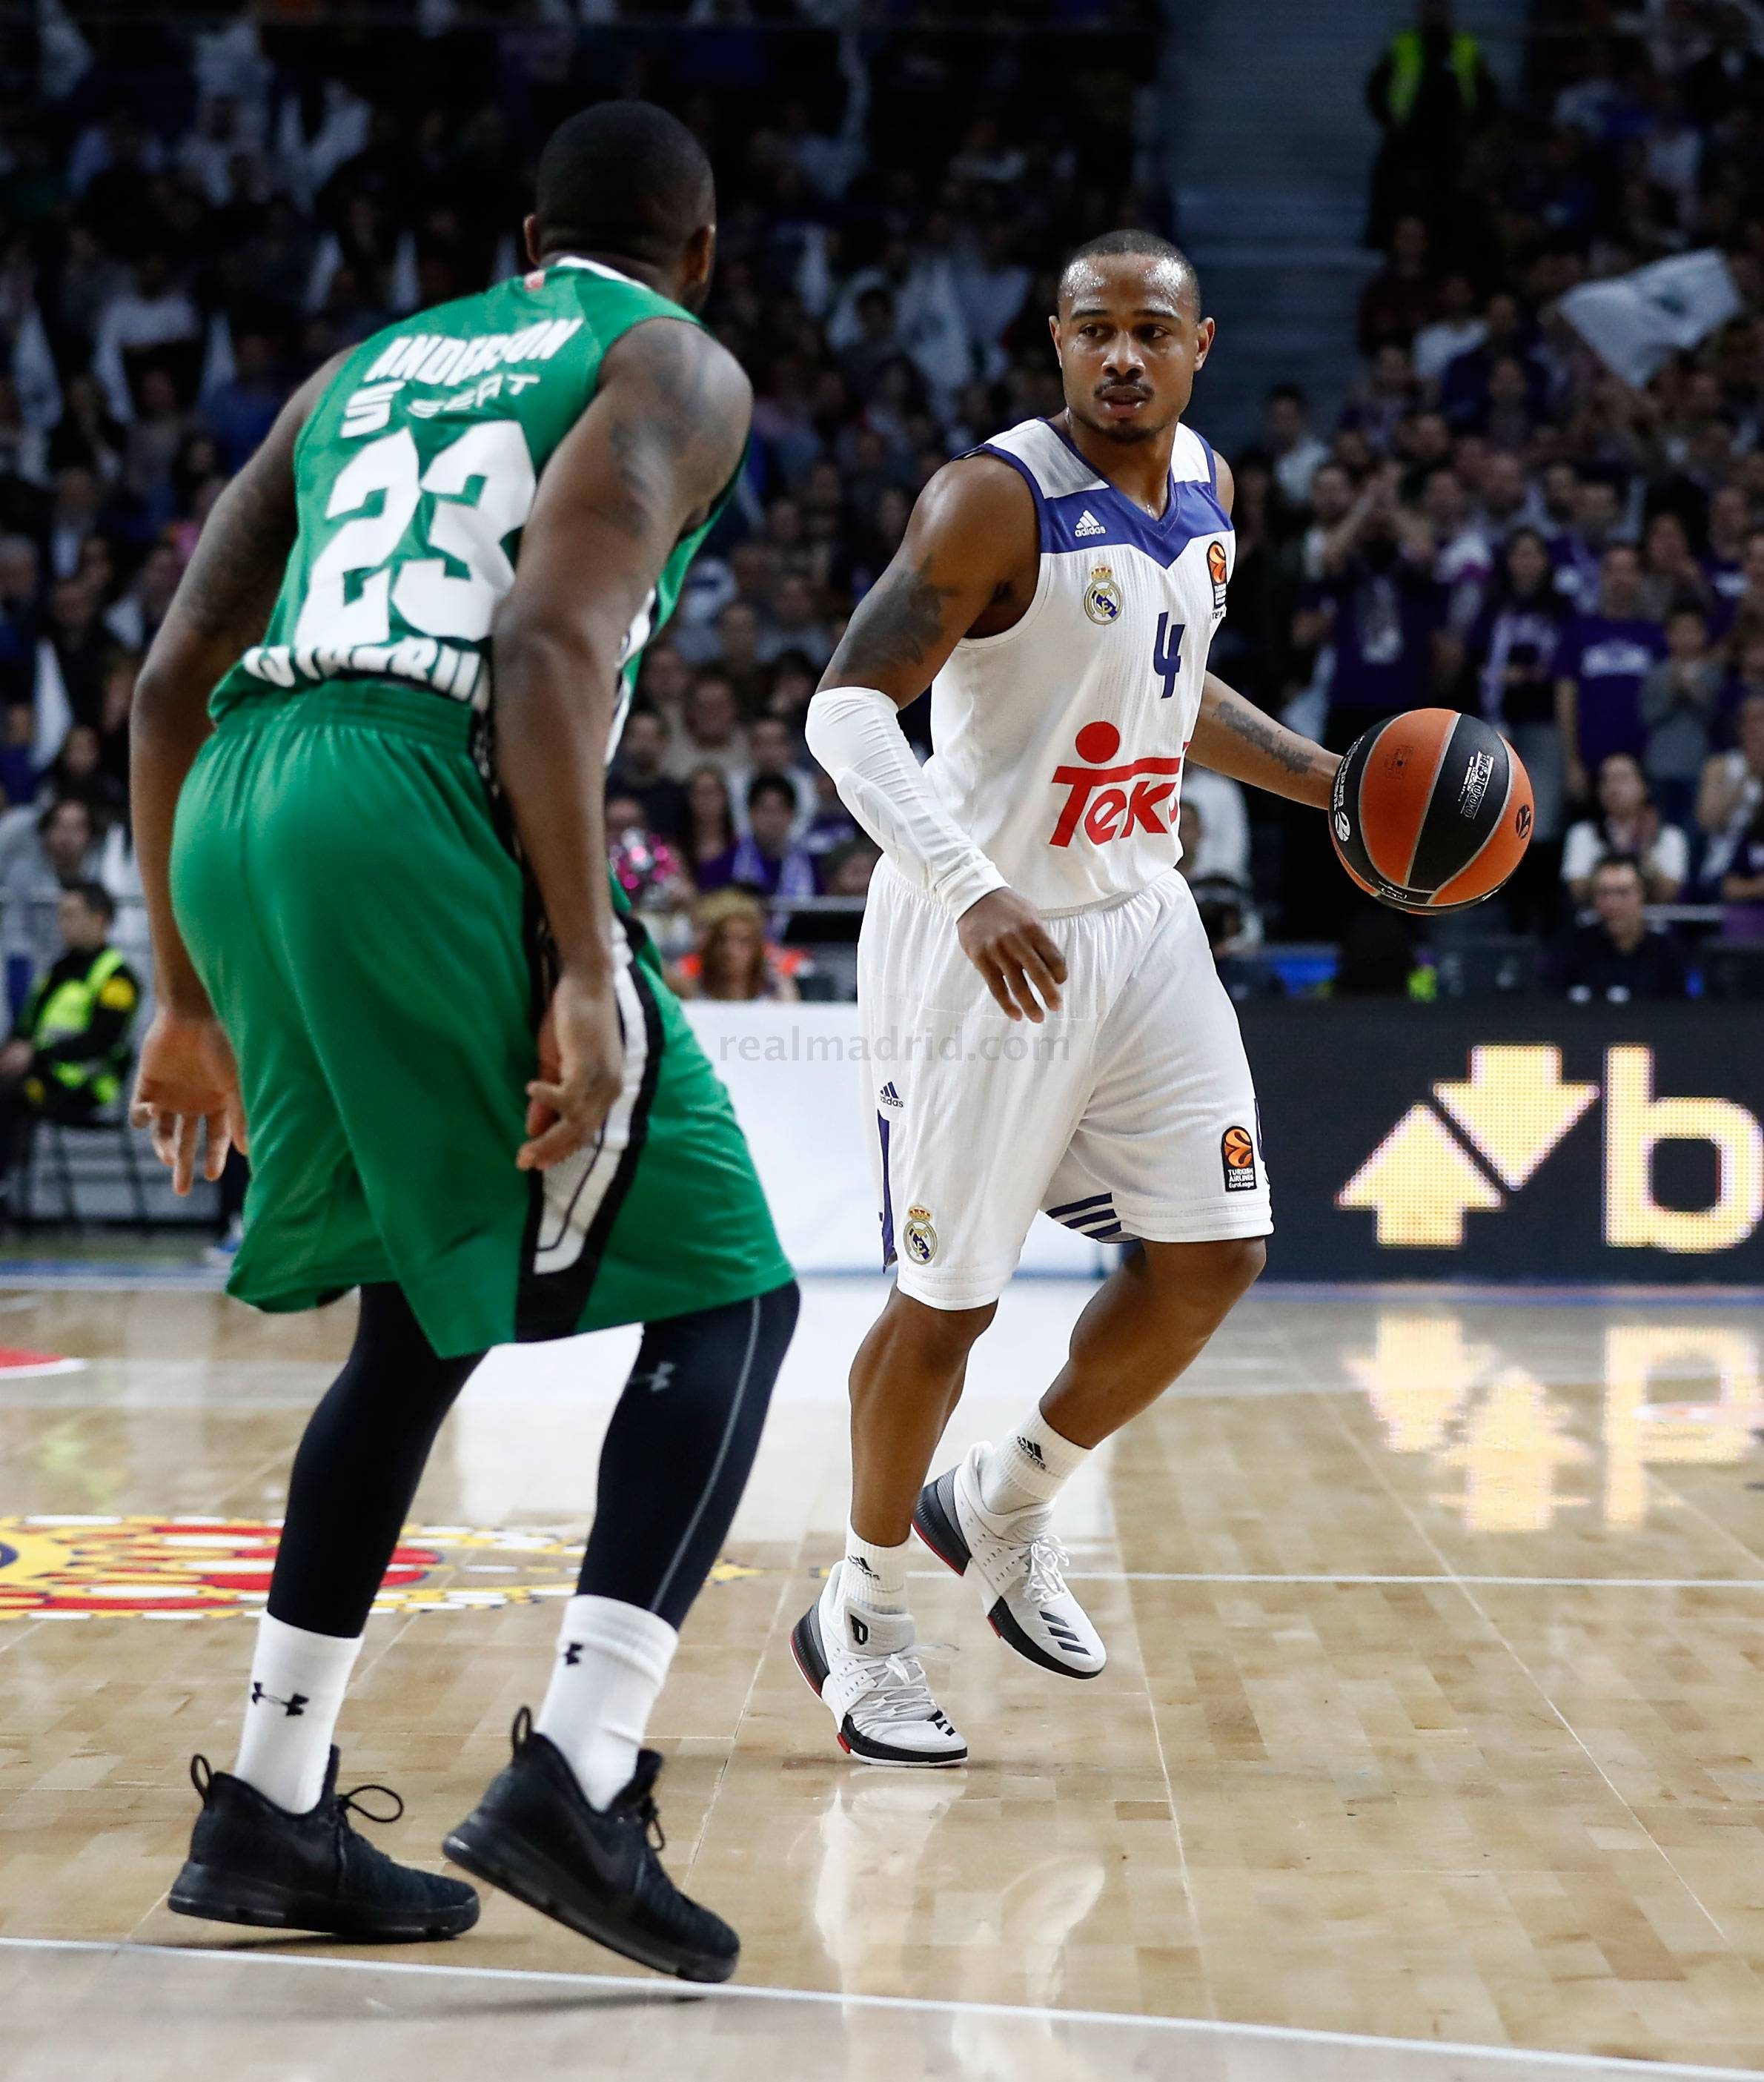 Real Madrid - Real Madrid - Darussafaka - 24-02-2017